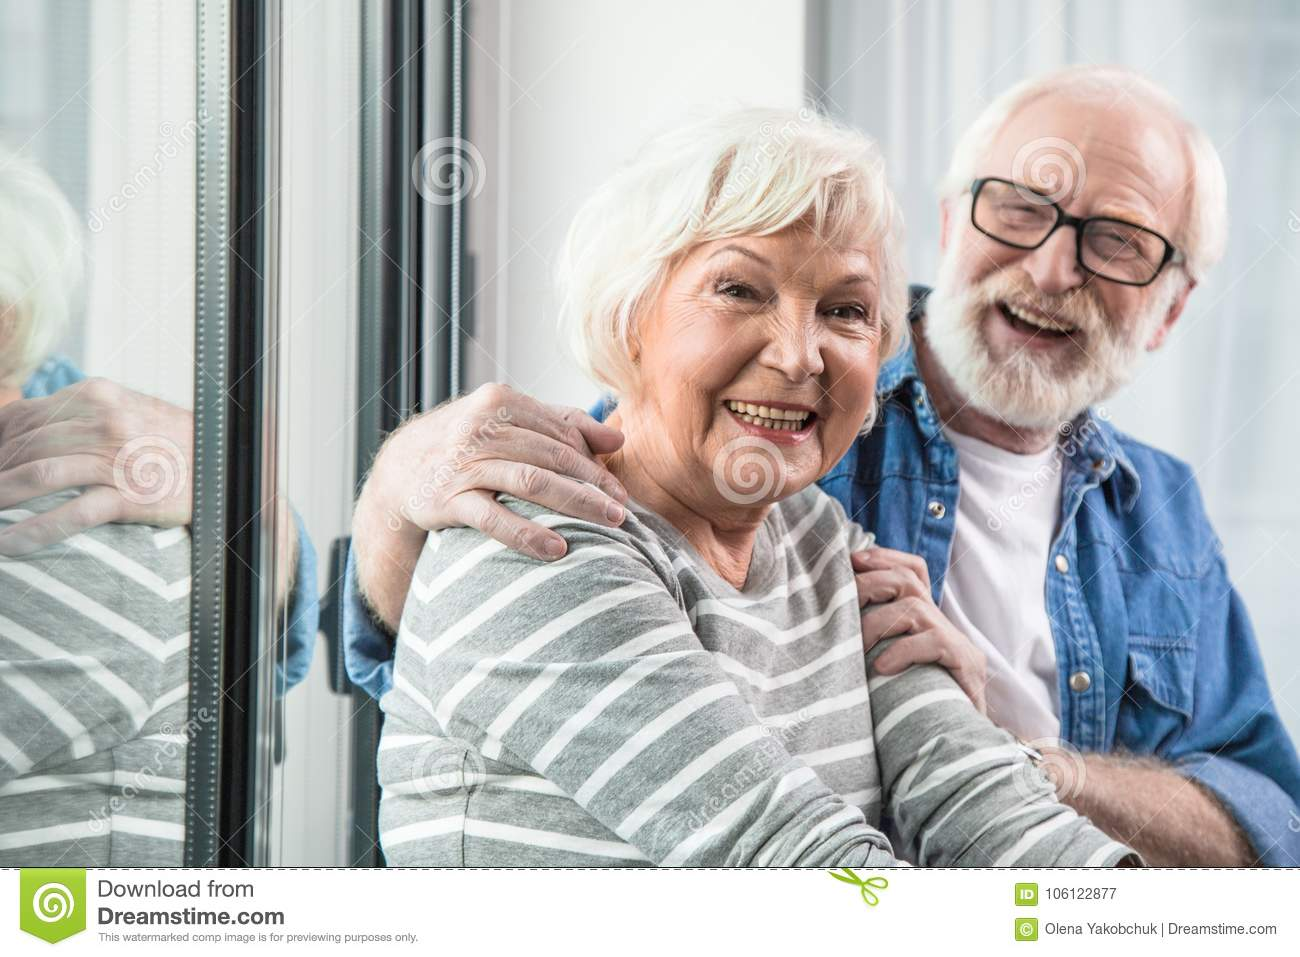 5e8302bc3a Waist up portrait of two old cheerful pensioners smiling at camera. Husband  is tenderly hugging wife while sitting at window